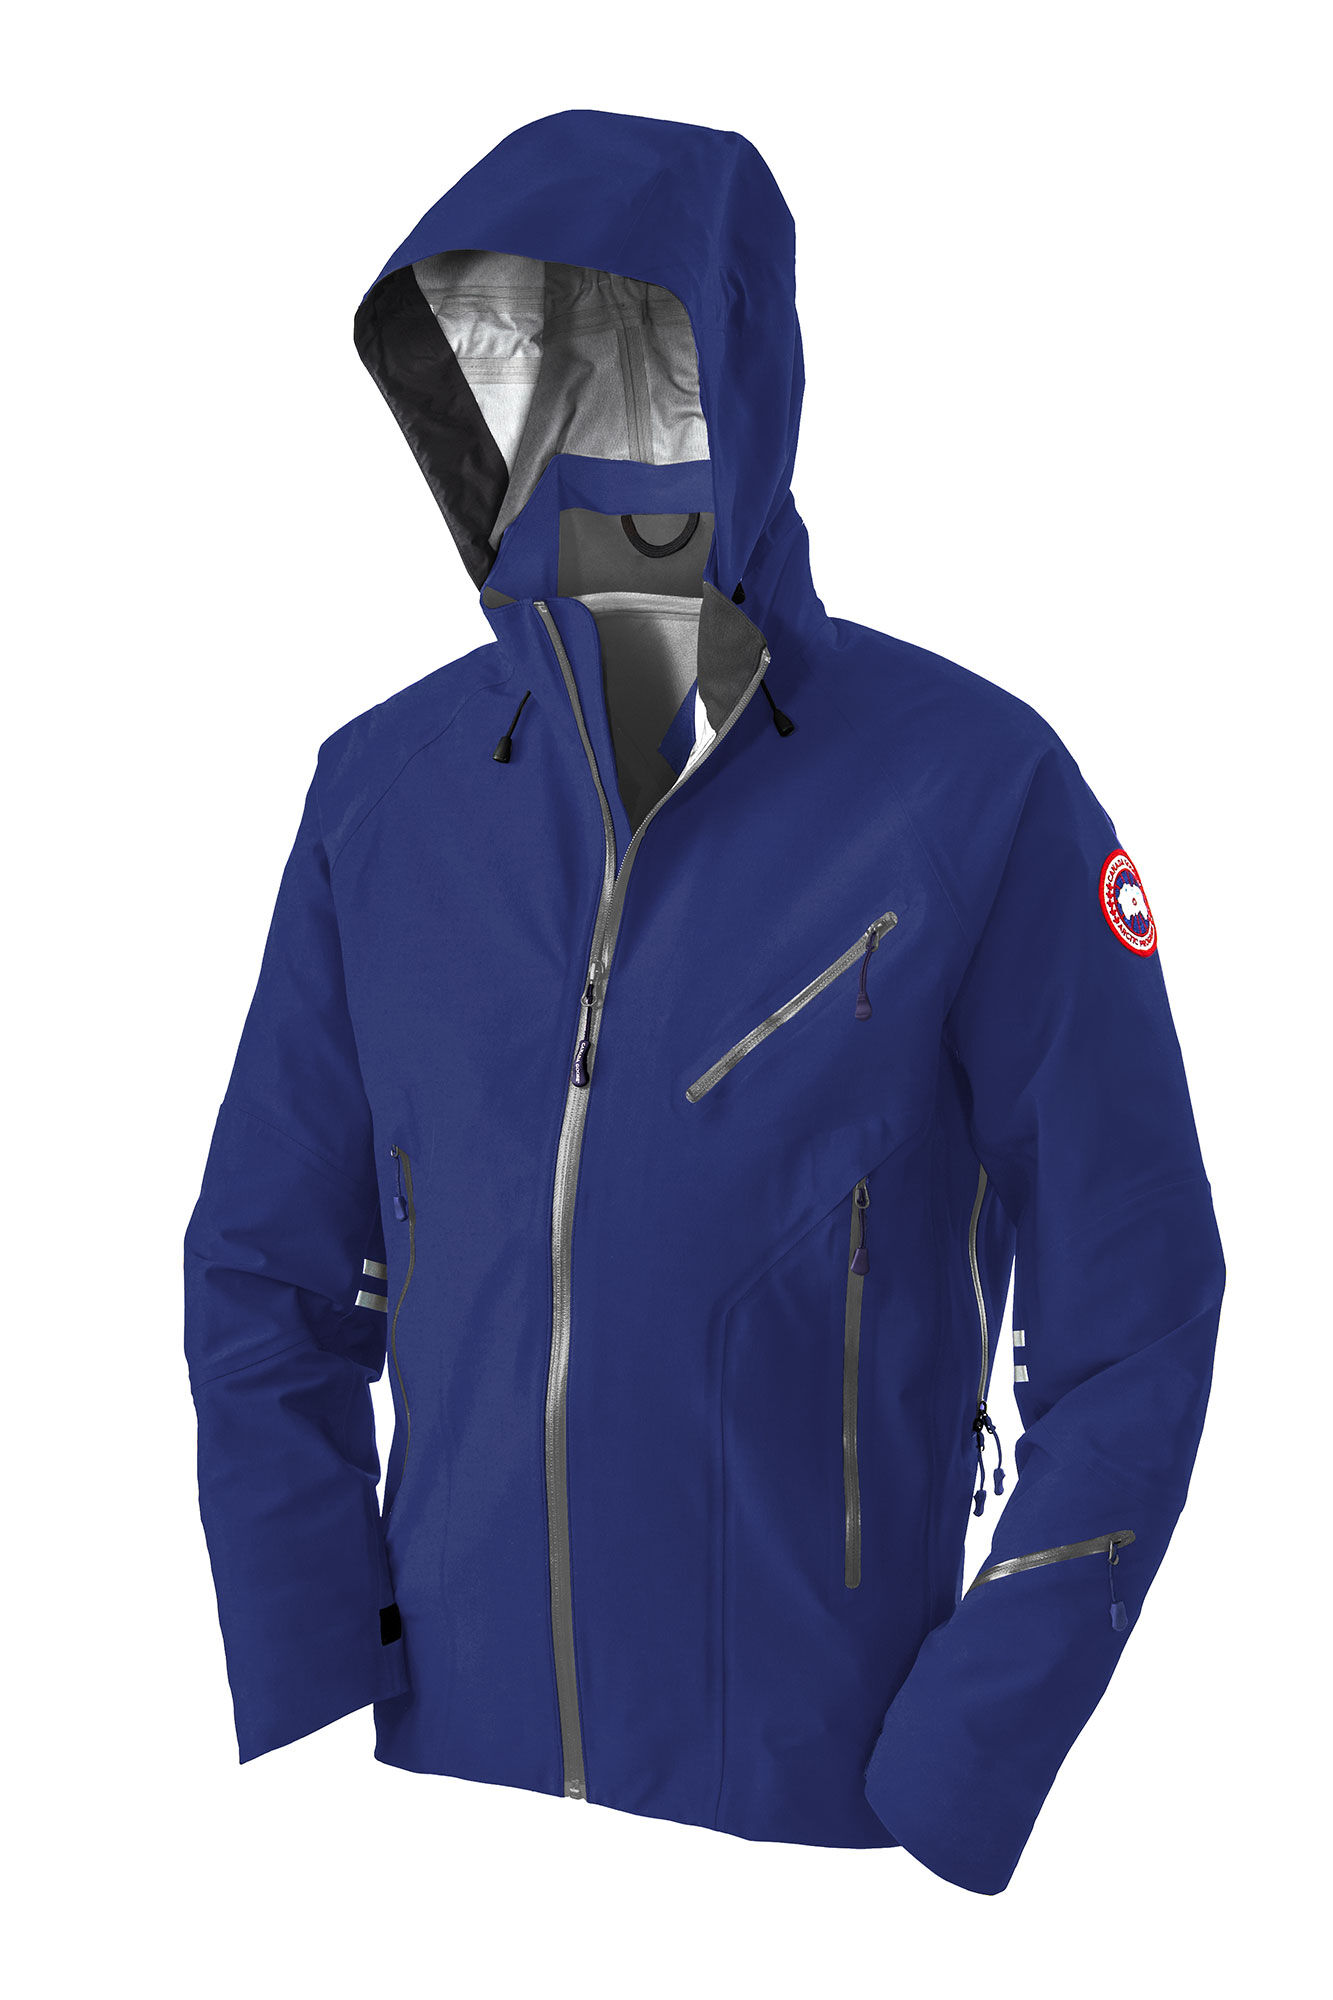 Canada Goose kids replica store - Men's Technical Shells Timber Shell Jacket | Canada Goose?